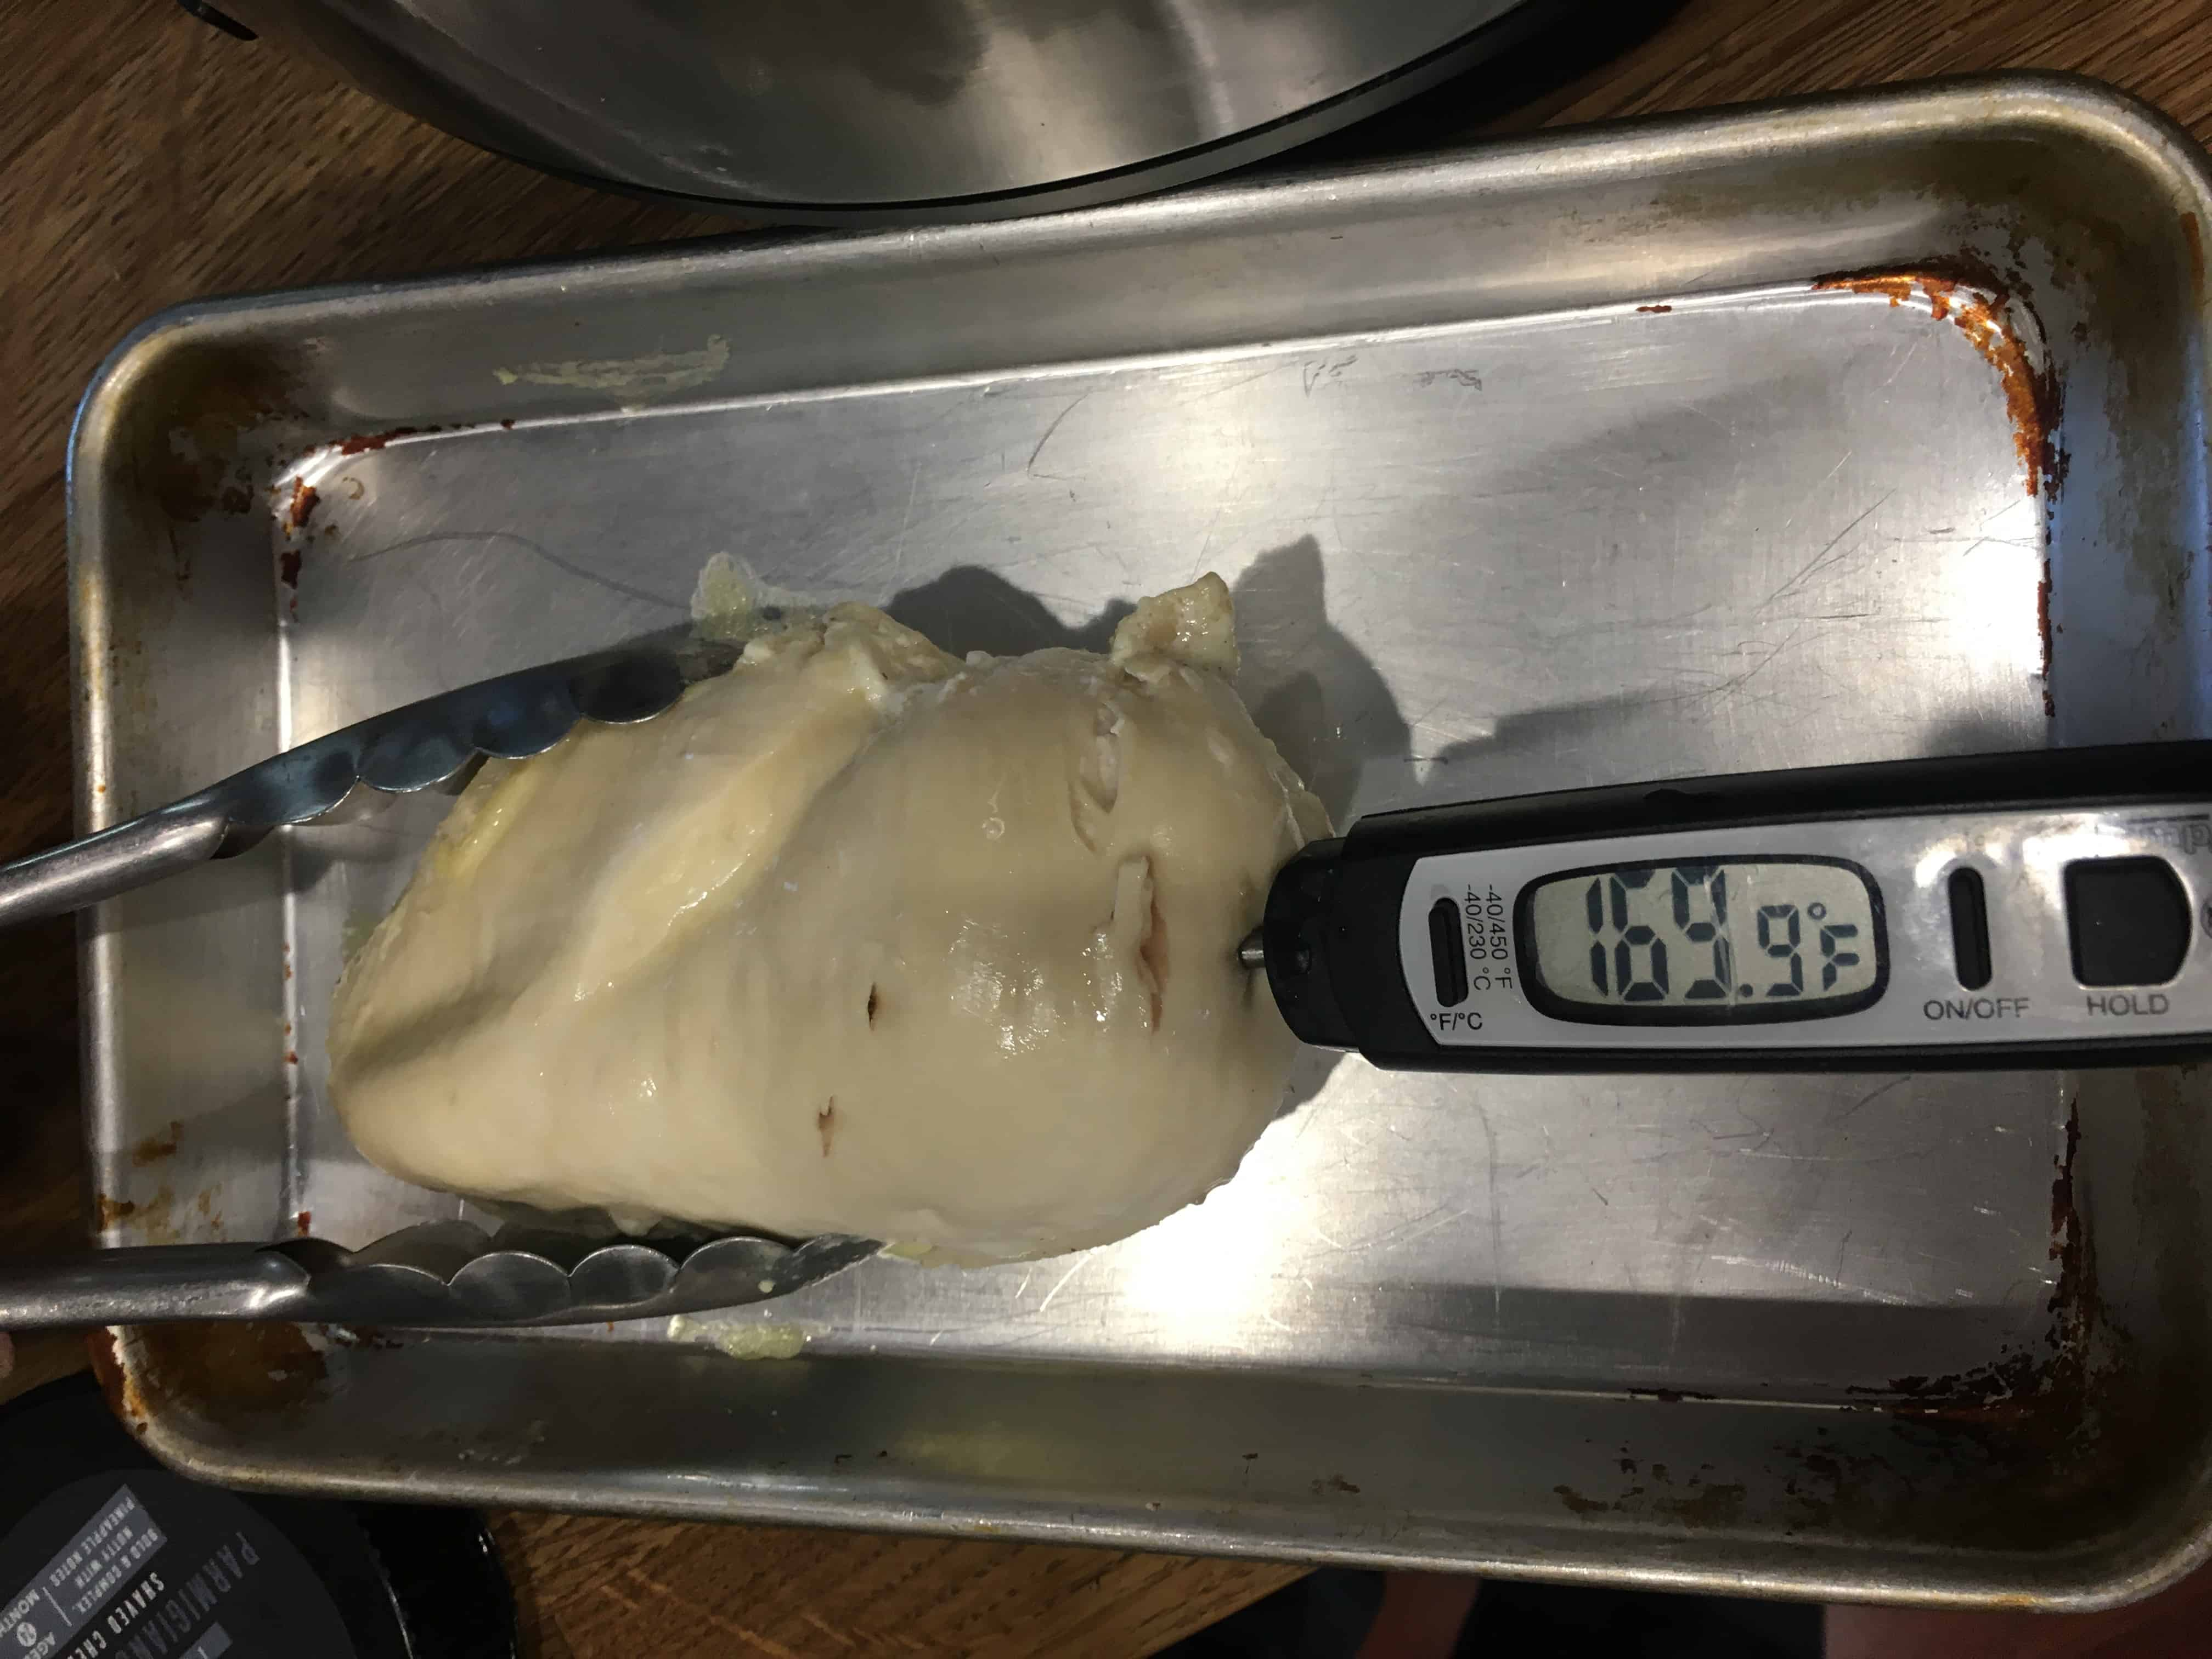 Meat thermometer reads 169°F inserted into cooked chicken breast being held by tongs on stainless steel baking sheet